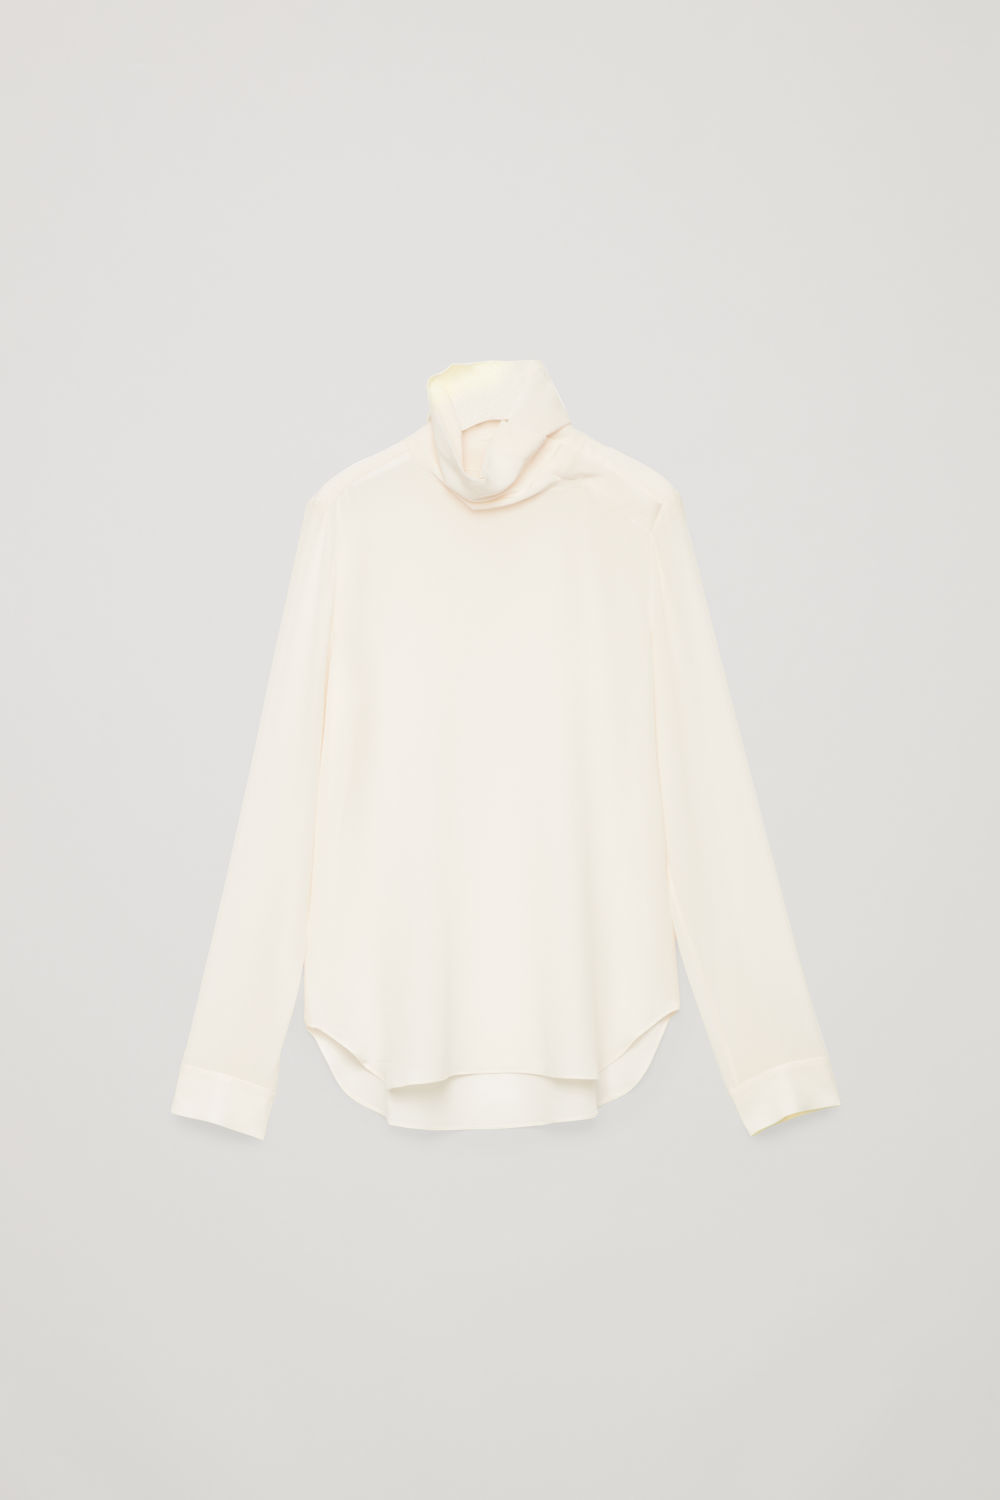 코스 실크 블라우스 COS HIGH-NECK SILK BLOUSE,Cream